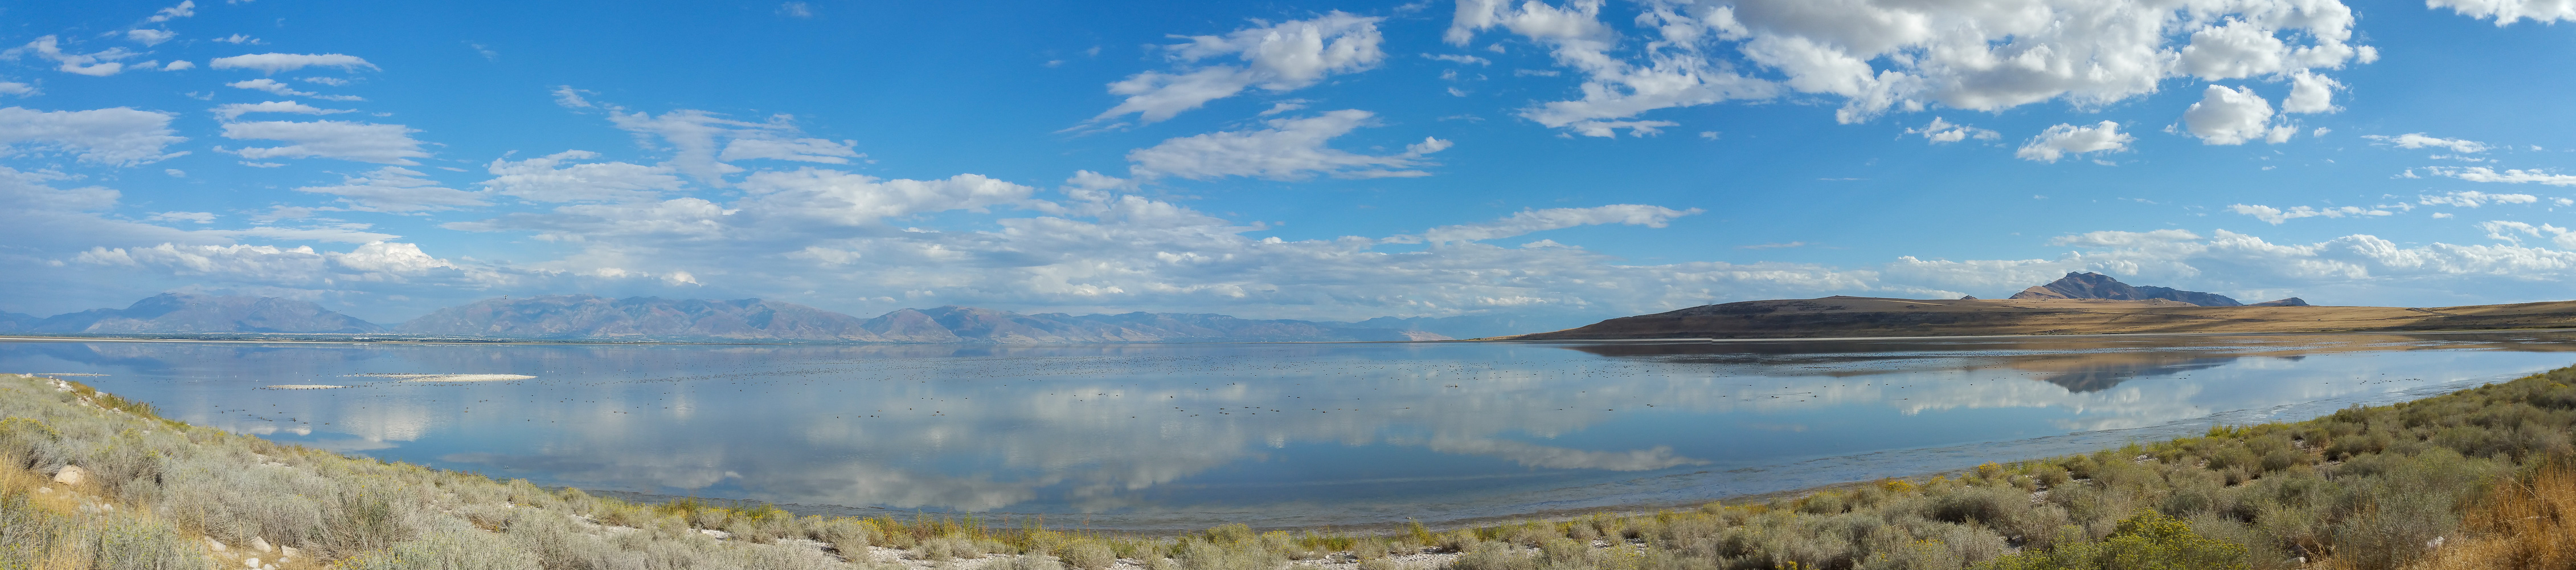 Driving out to Antelope Island in Utah